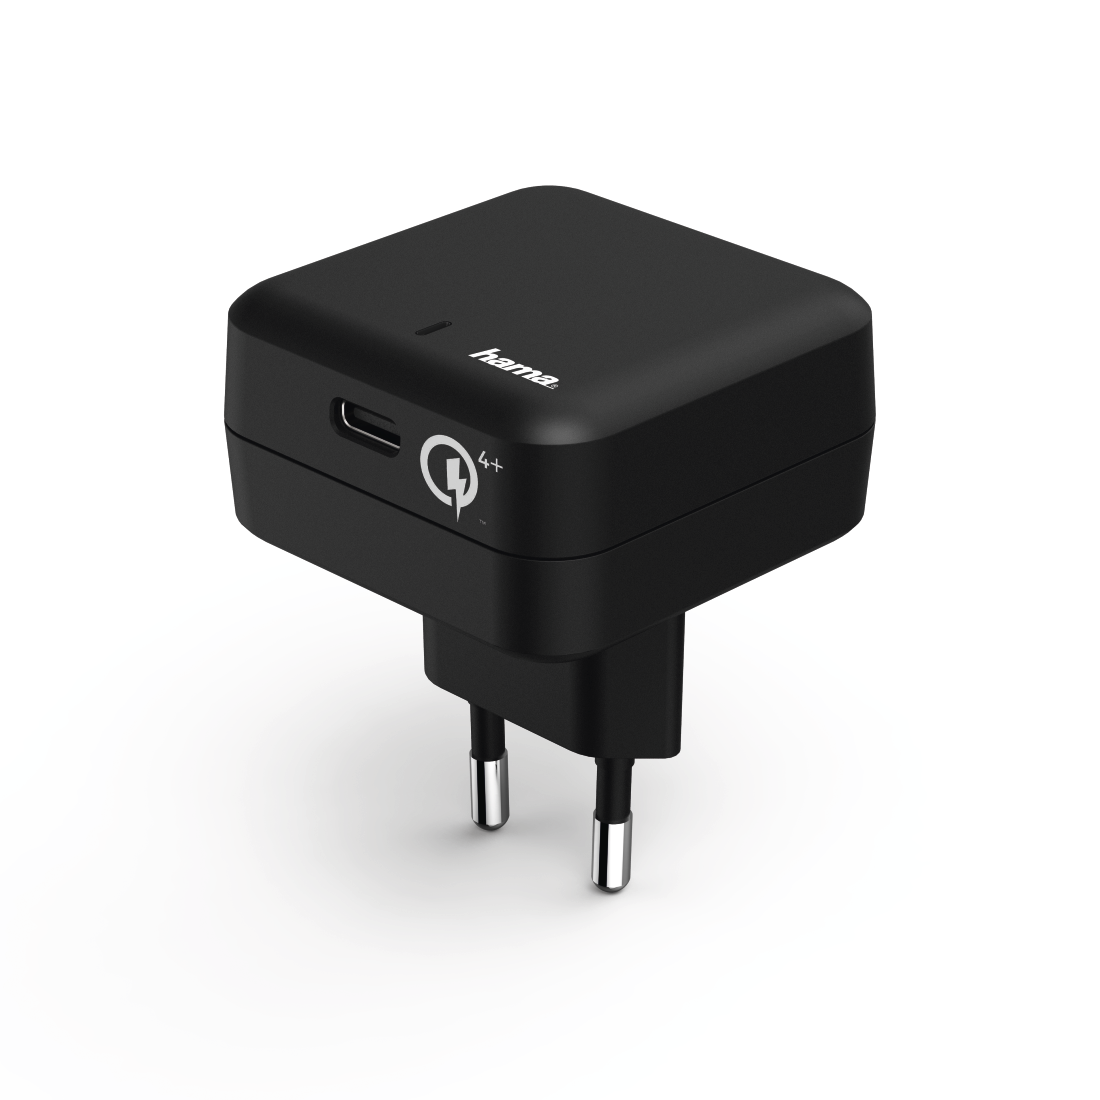 "abx High-Res Image - Hama, ŁADOWARKA SIECIOWA ""Qualcomm® Quick Charge™ 4+ / Power Delivery (PD), CZARN"